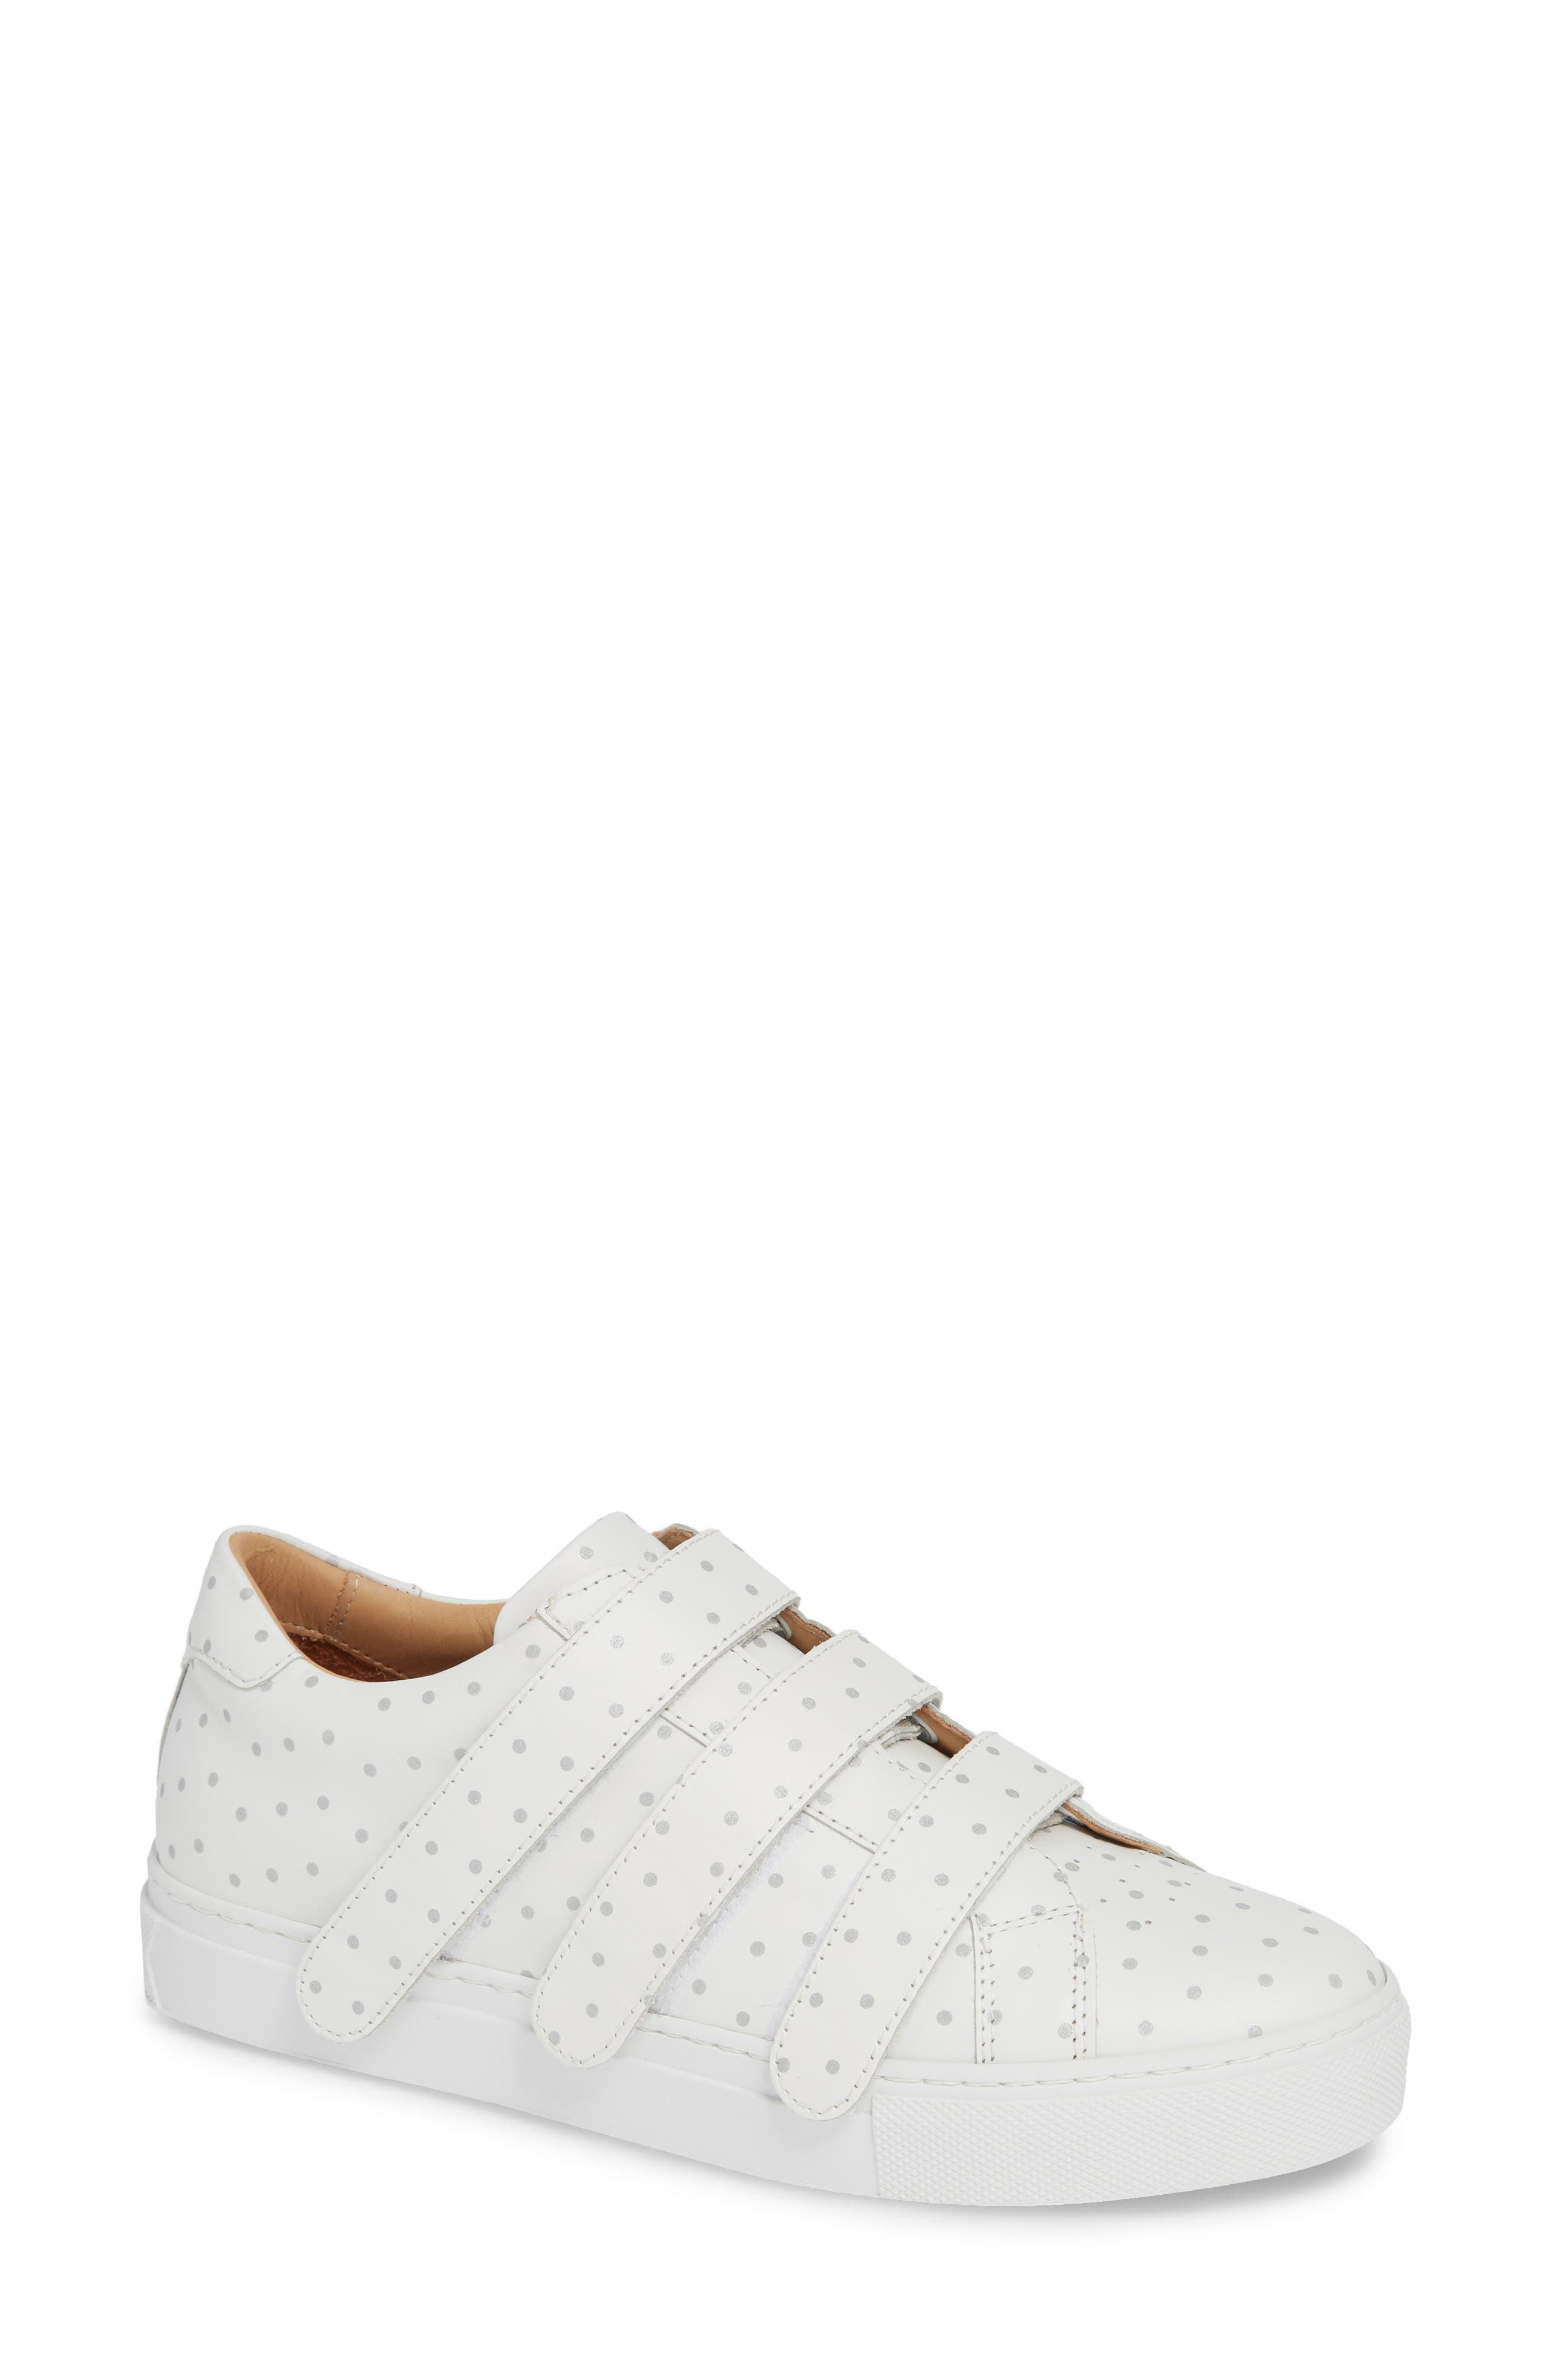 GREATS Royale Low Top Sneaker in White/ 3M Dots